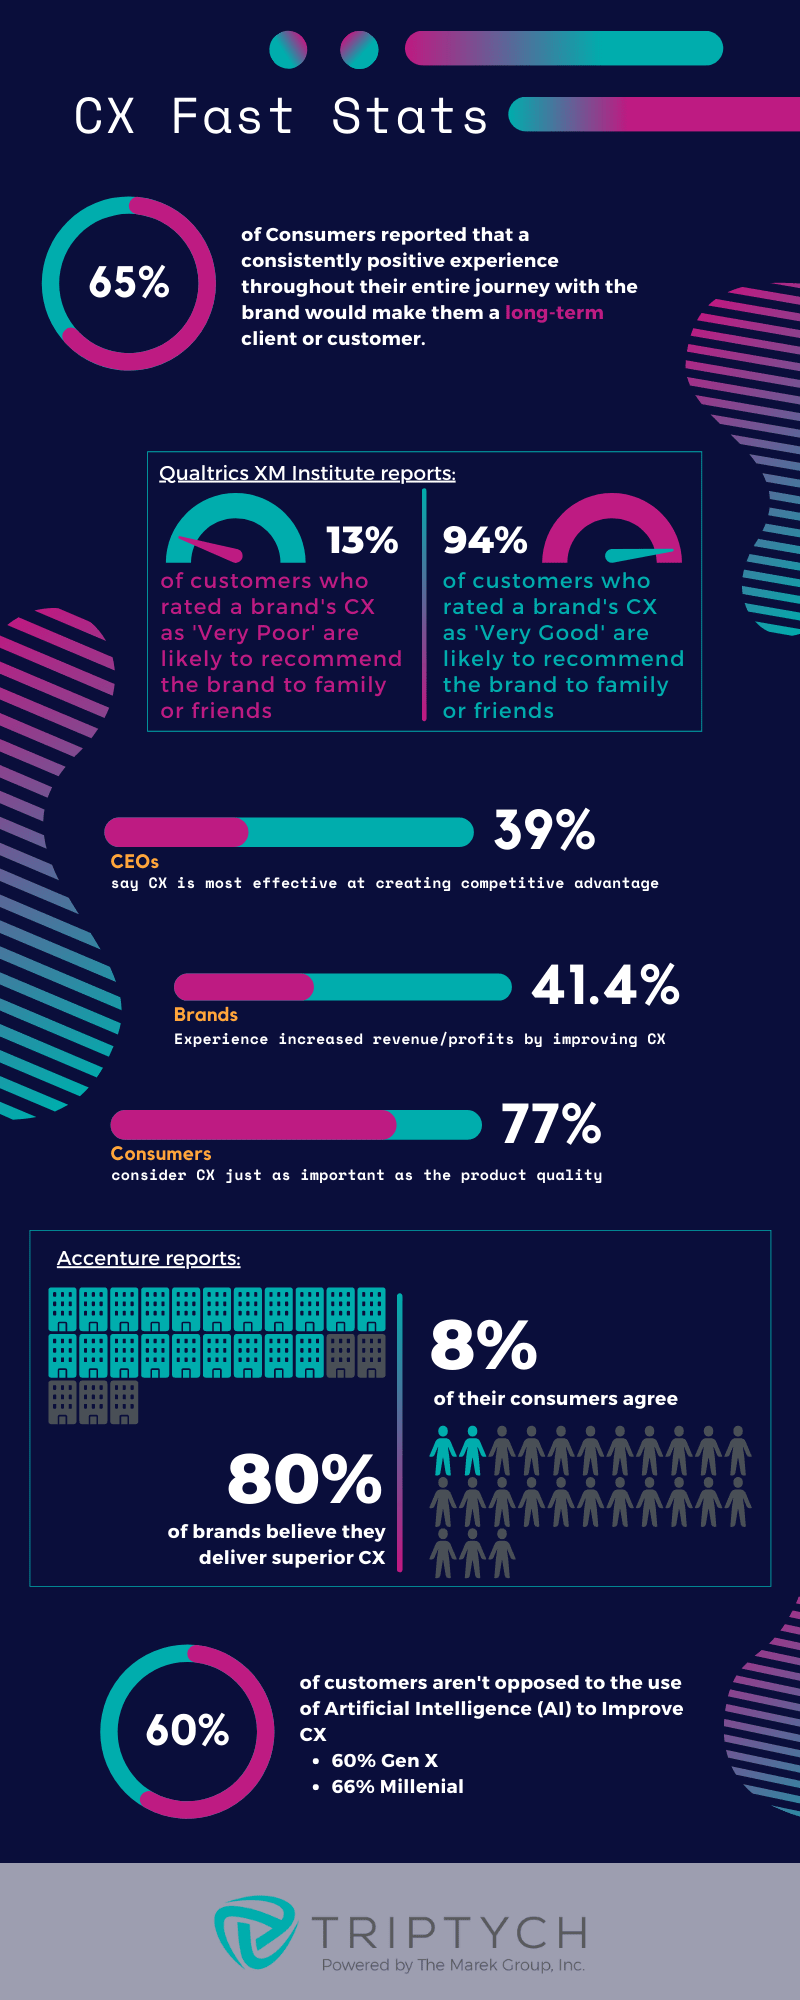 cx-fast-stats_infographic-image